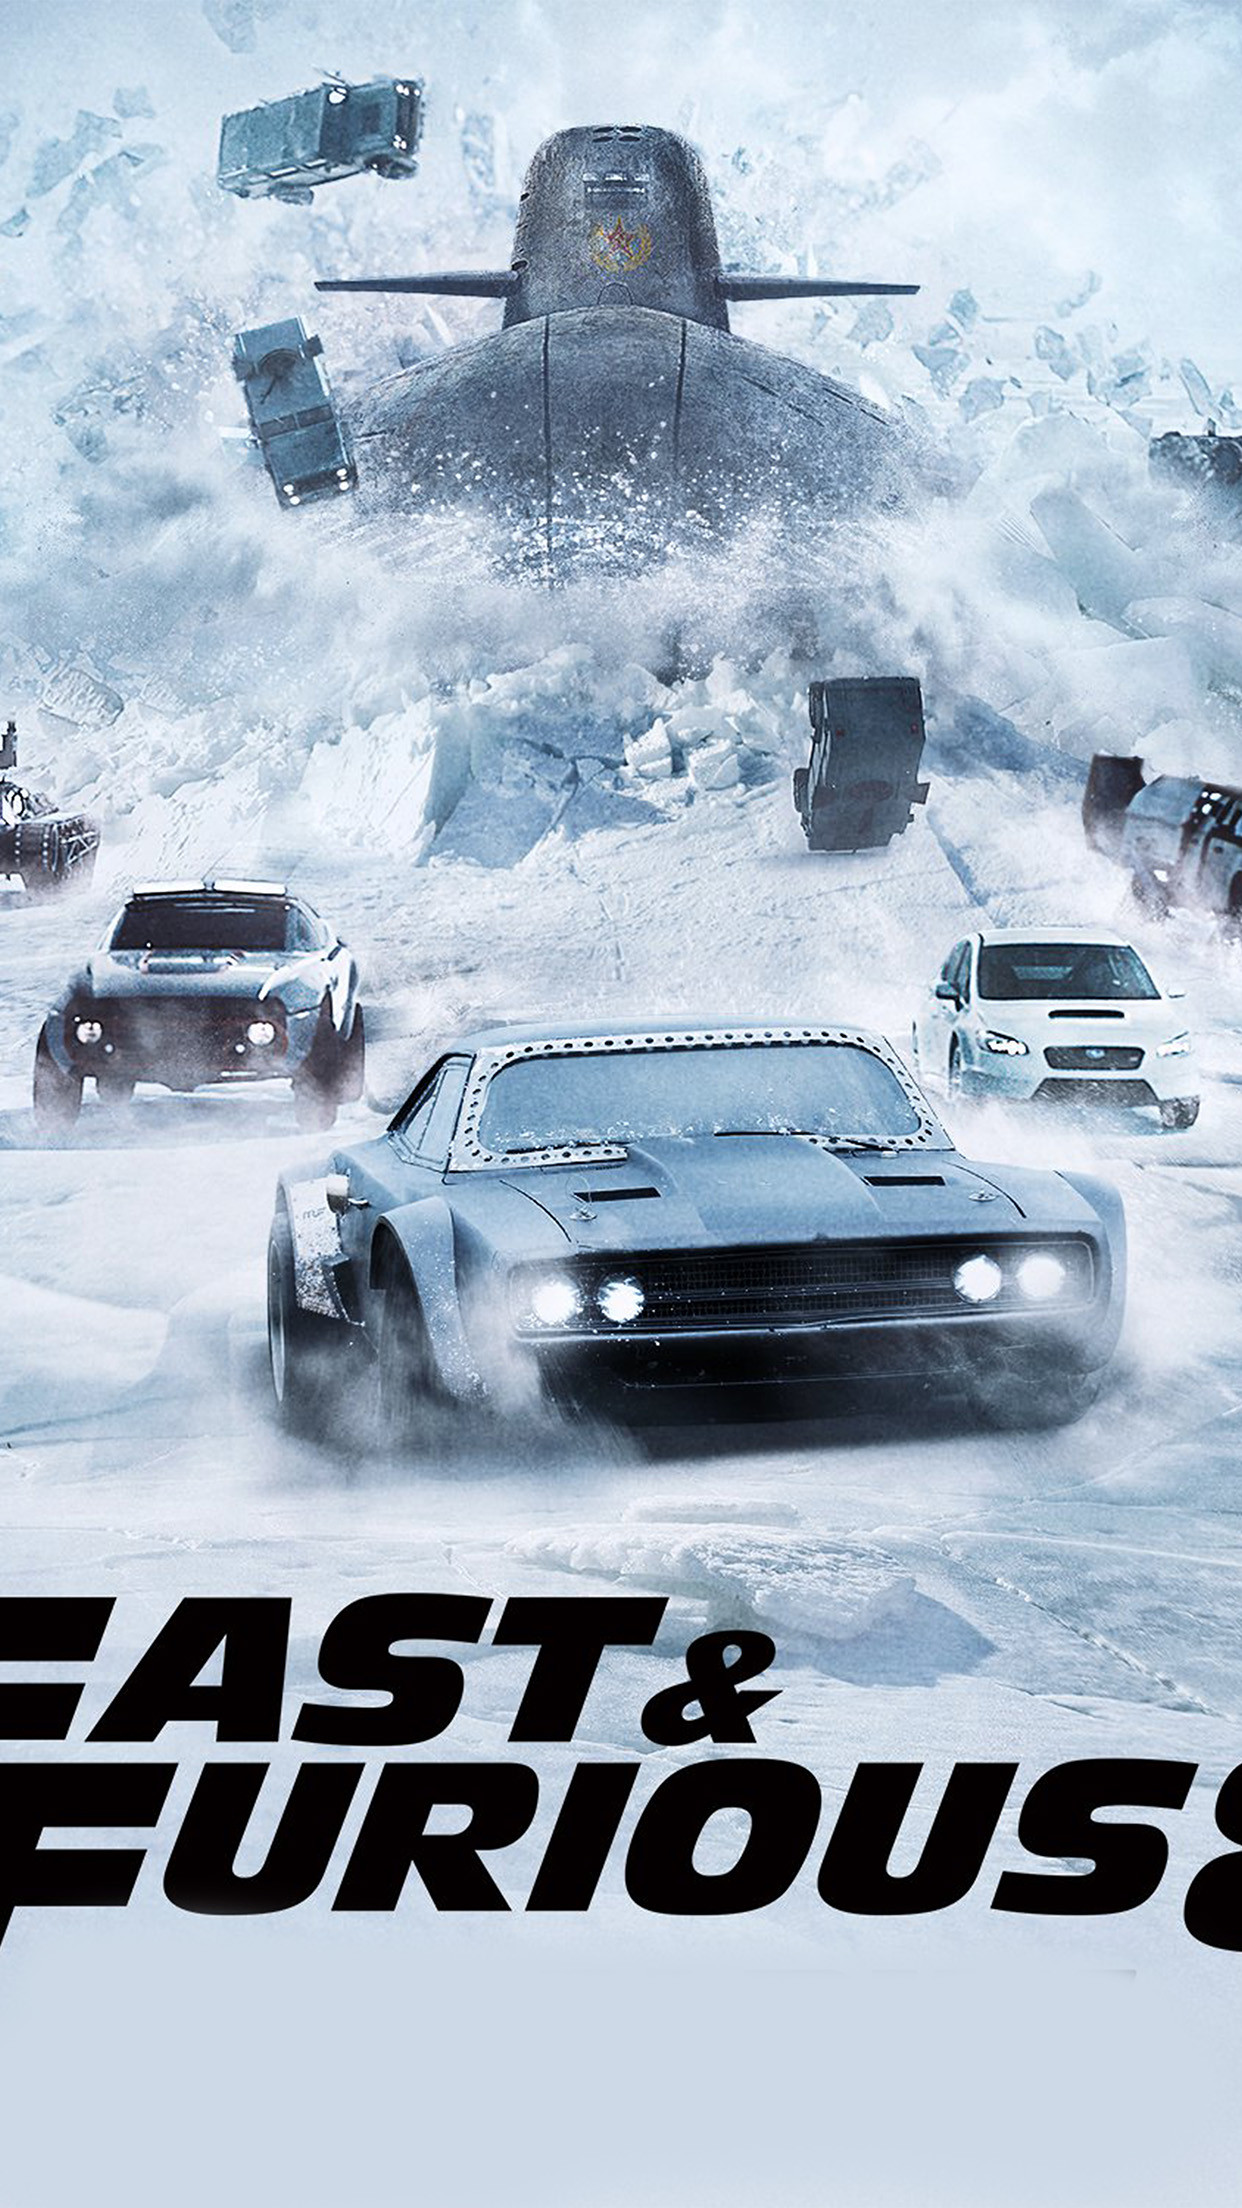 The fast and the furious wallpapers 68 images - Furious 8 wallpaper ...